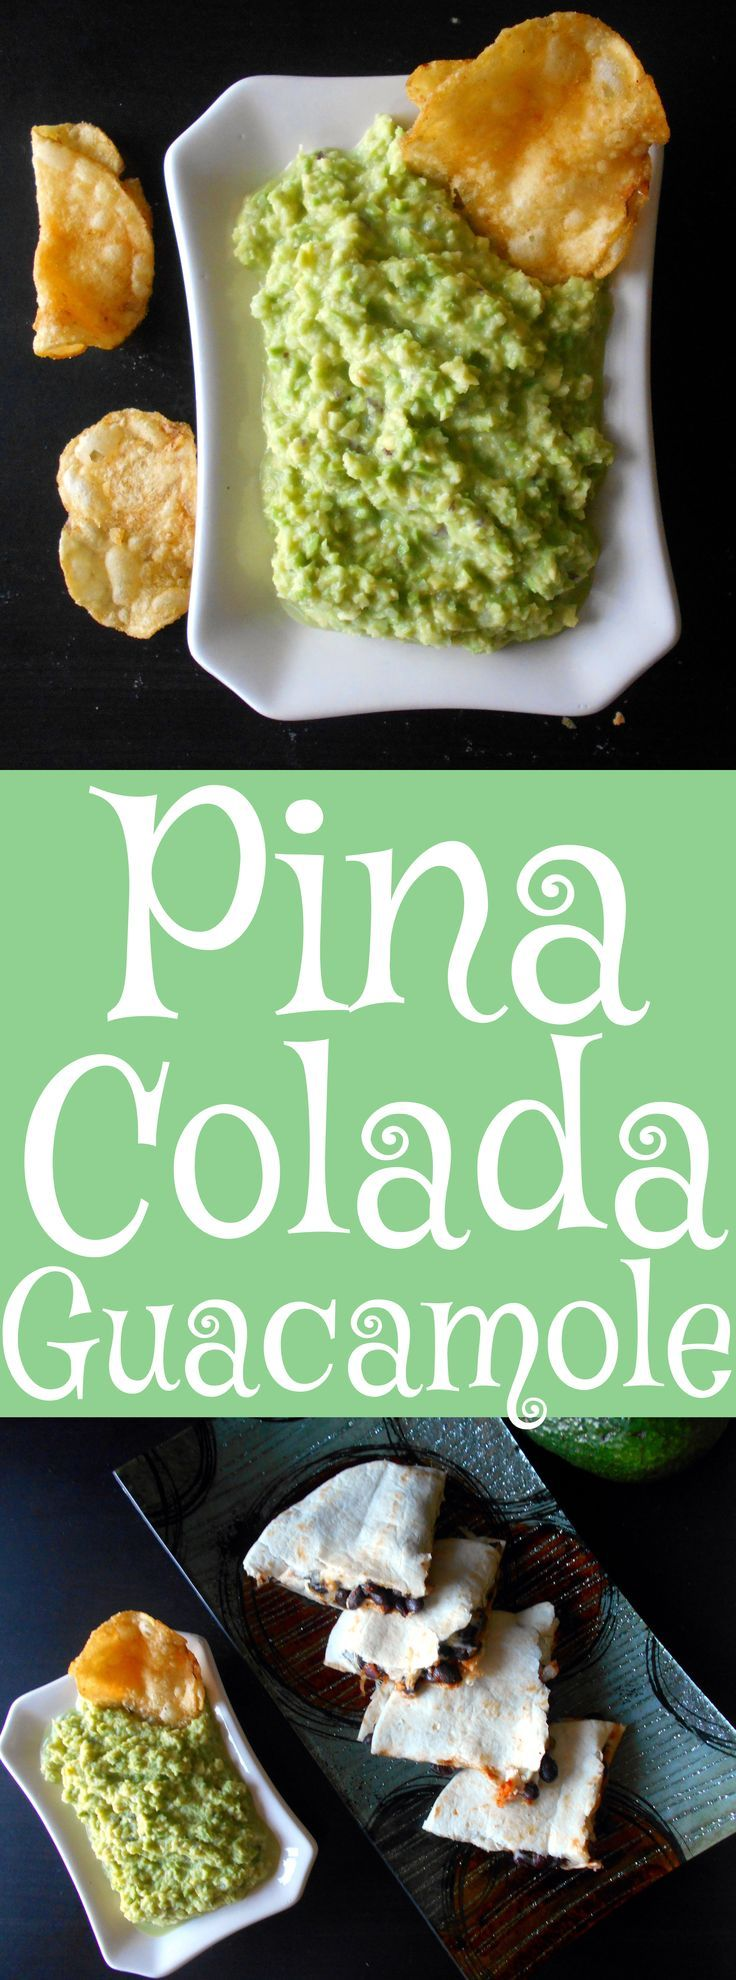 Pina Colada Guacamole is very easy to make.  Use the same ingredients as Pina Colada and add guacamole ingredients too. #GameDayFavorites #OEPGameDay #Sp